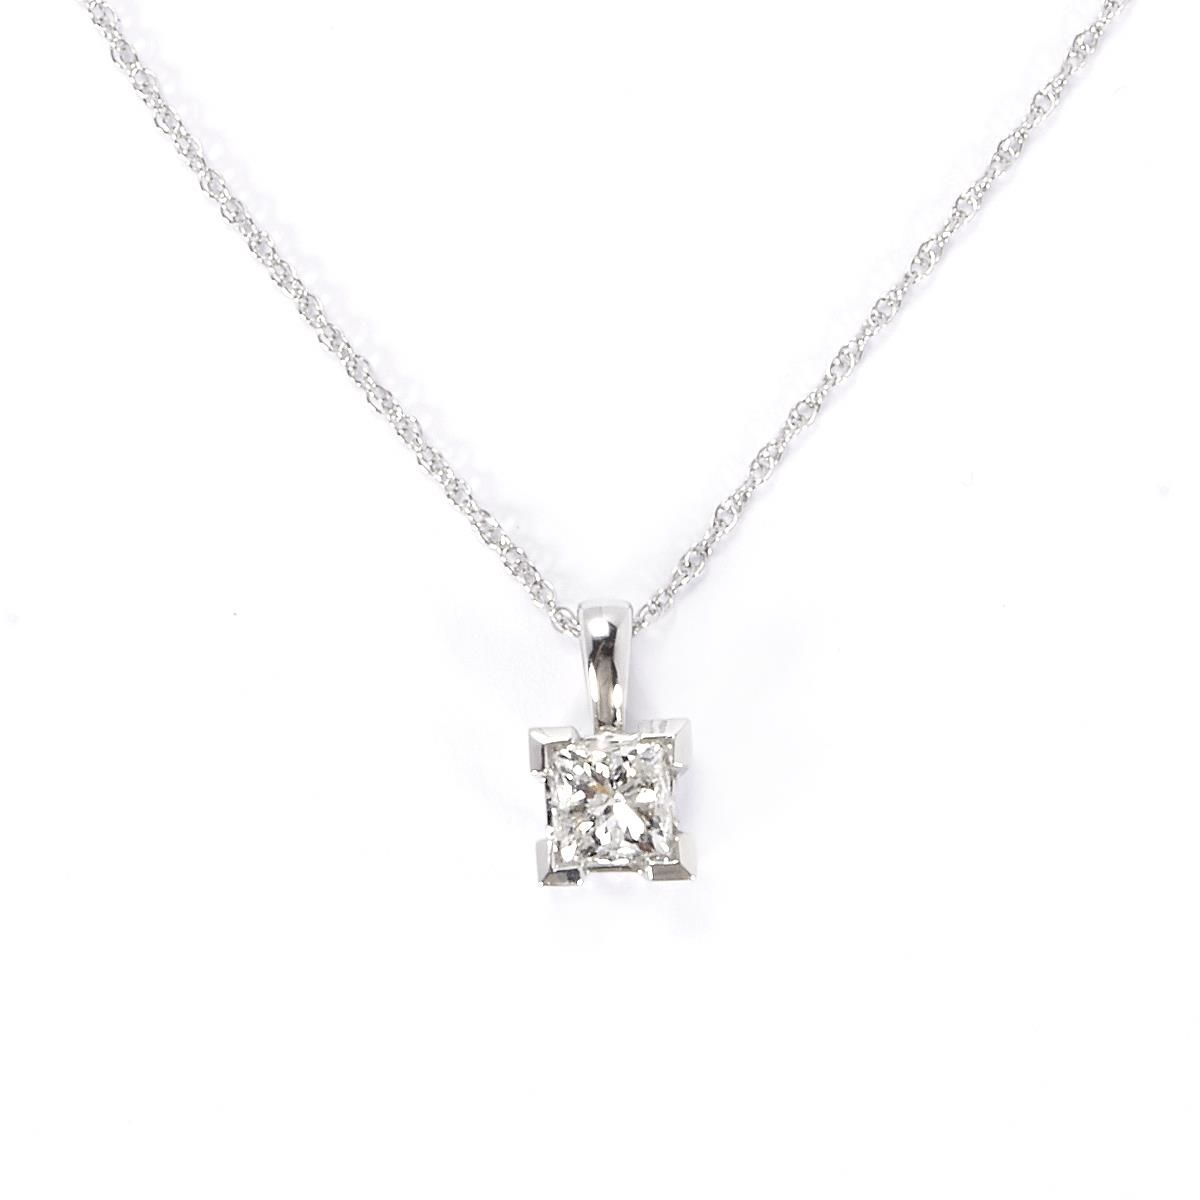 p princess cut set white gold pendant and earring